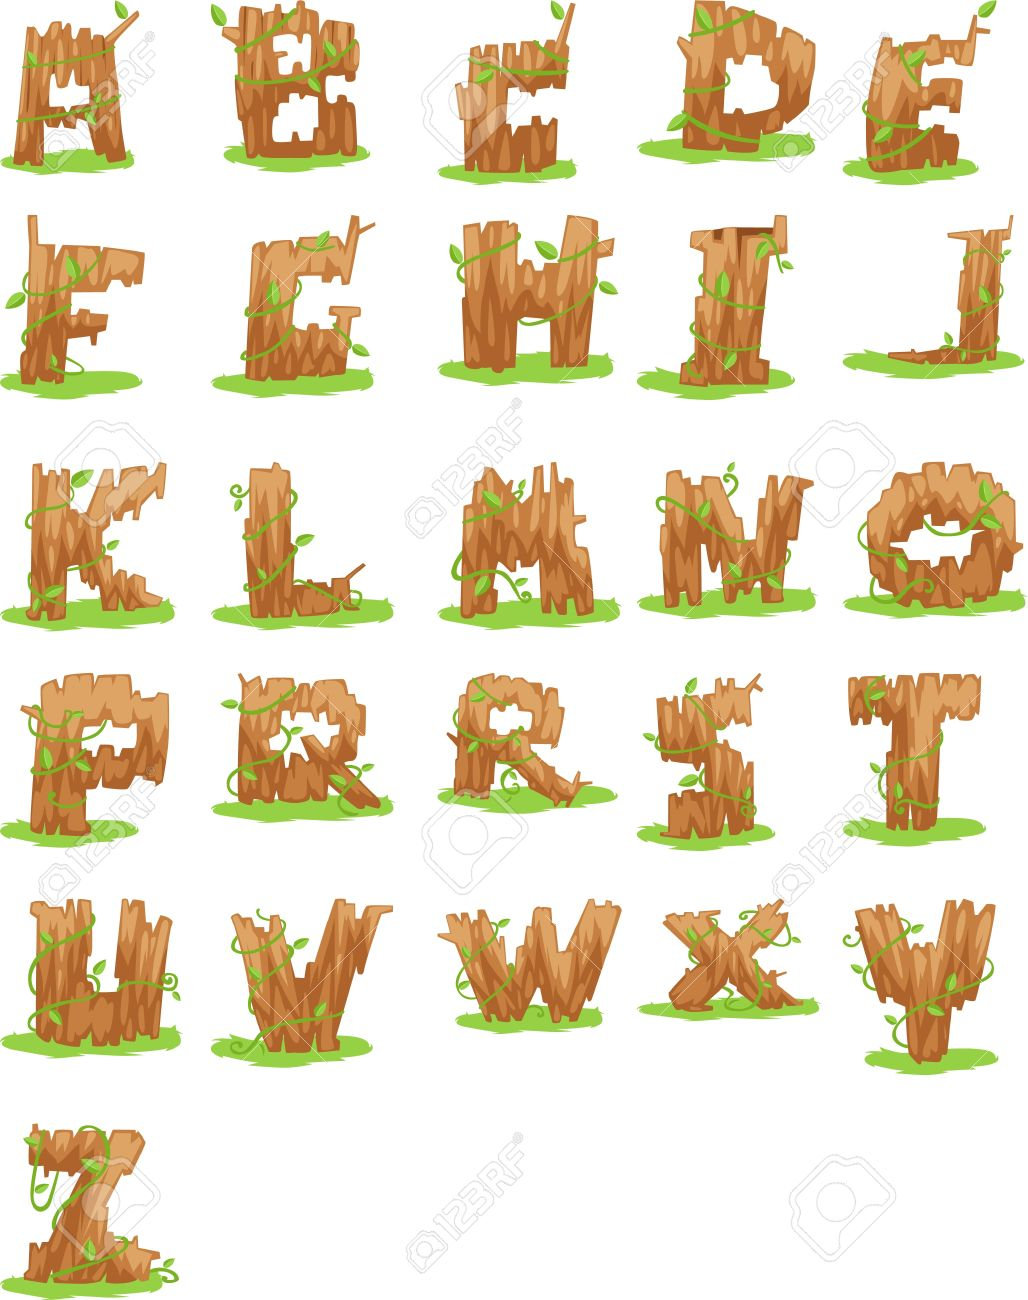 Alphabet clipart a z clipart transparent stock Wood ALPHABET LETTER - A-Z Vector Royalty Free Cliparts, Vectors ... clipart transparent stock